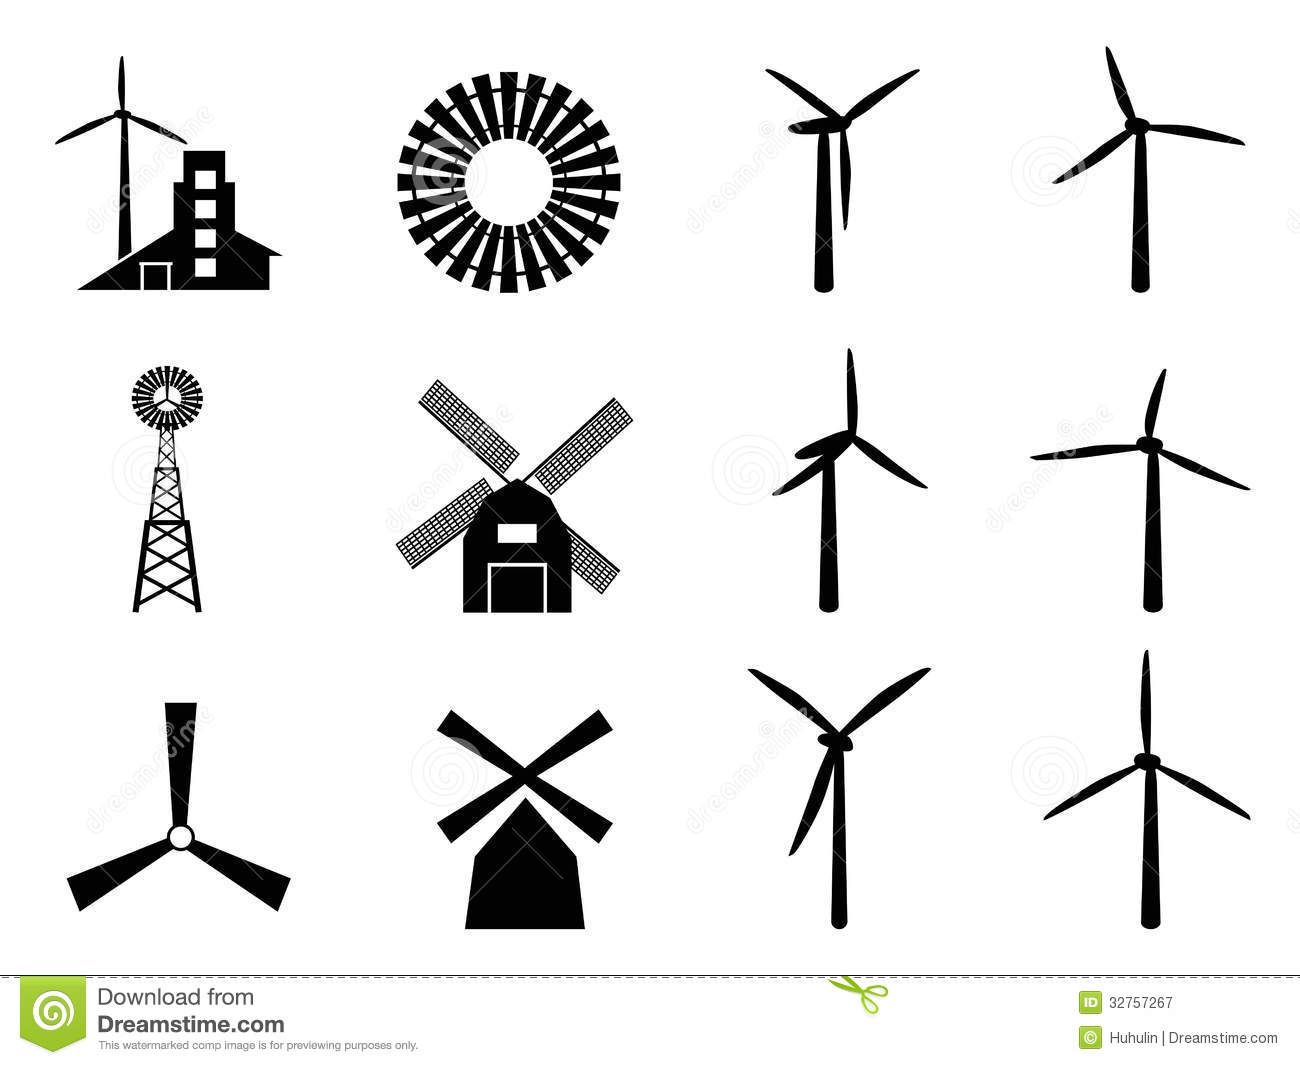 Dutch Windmill Stock Illustrations – 509 Dutch Windmill Stock ...